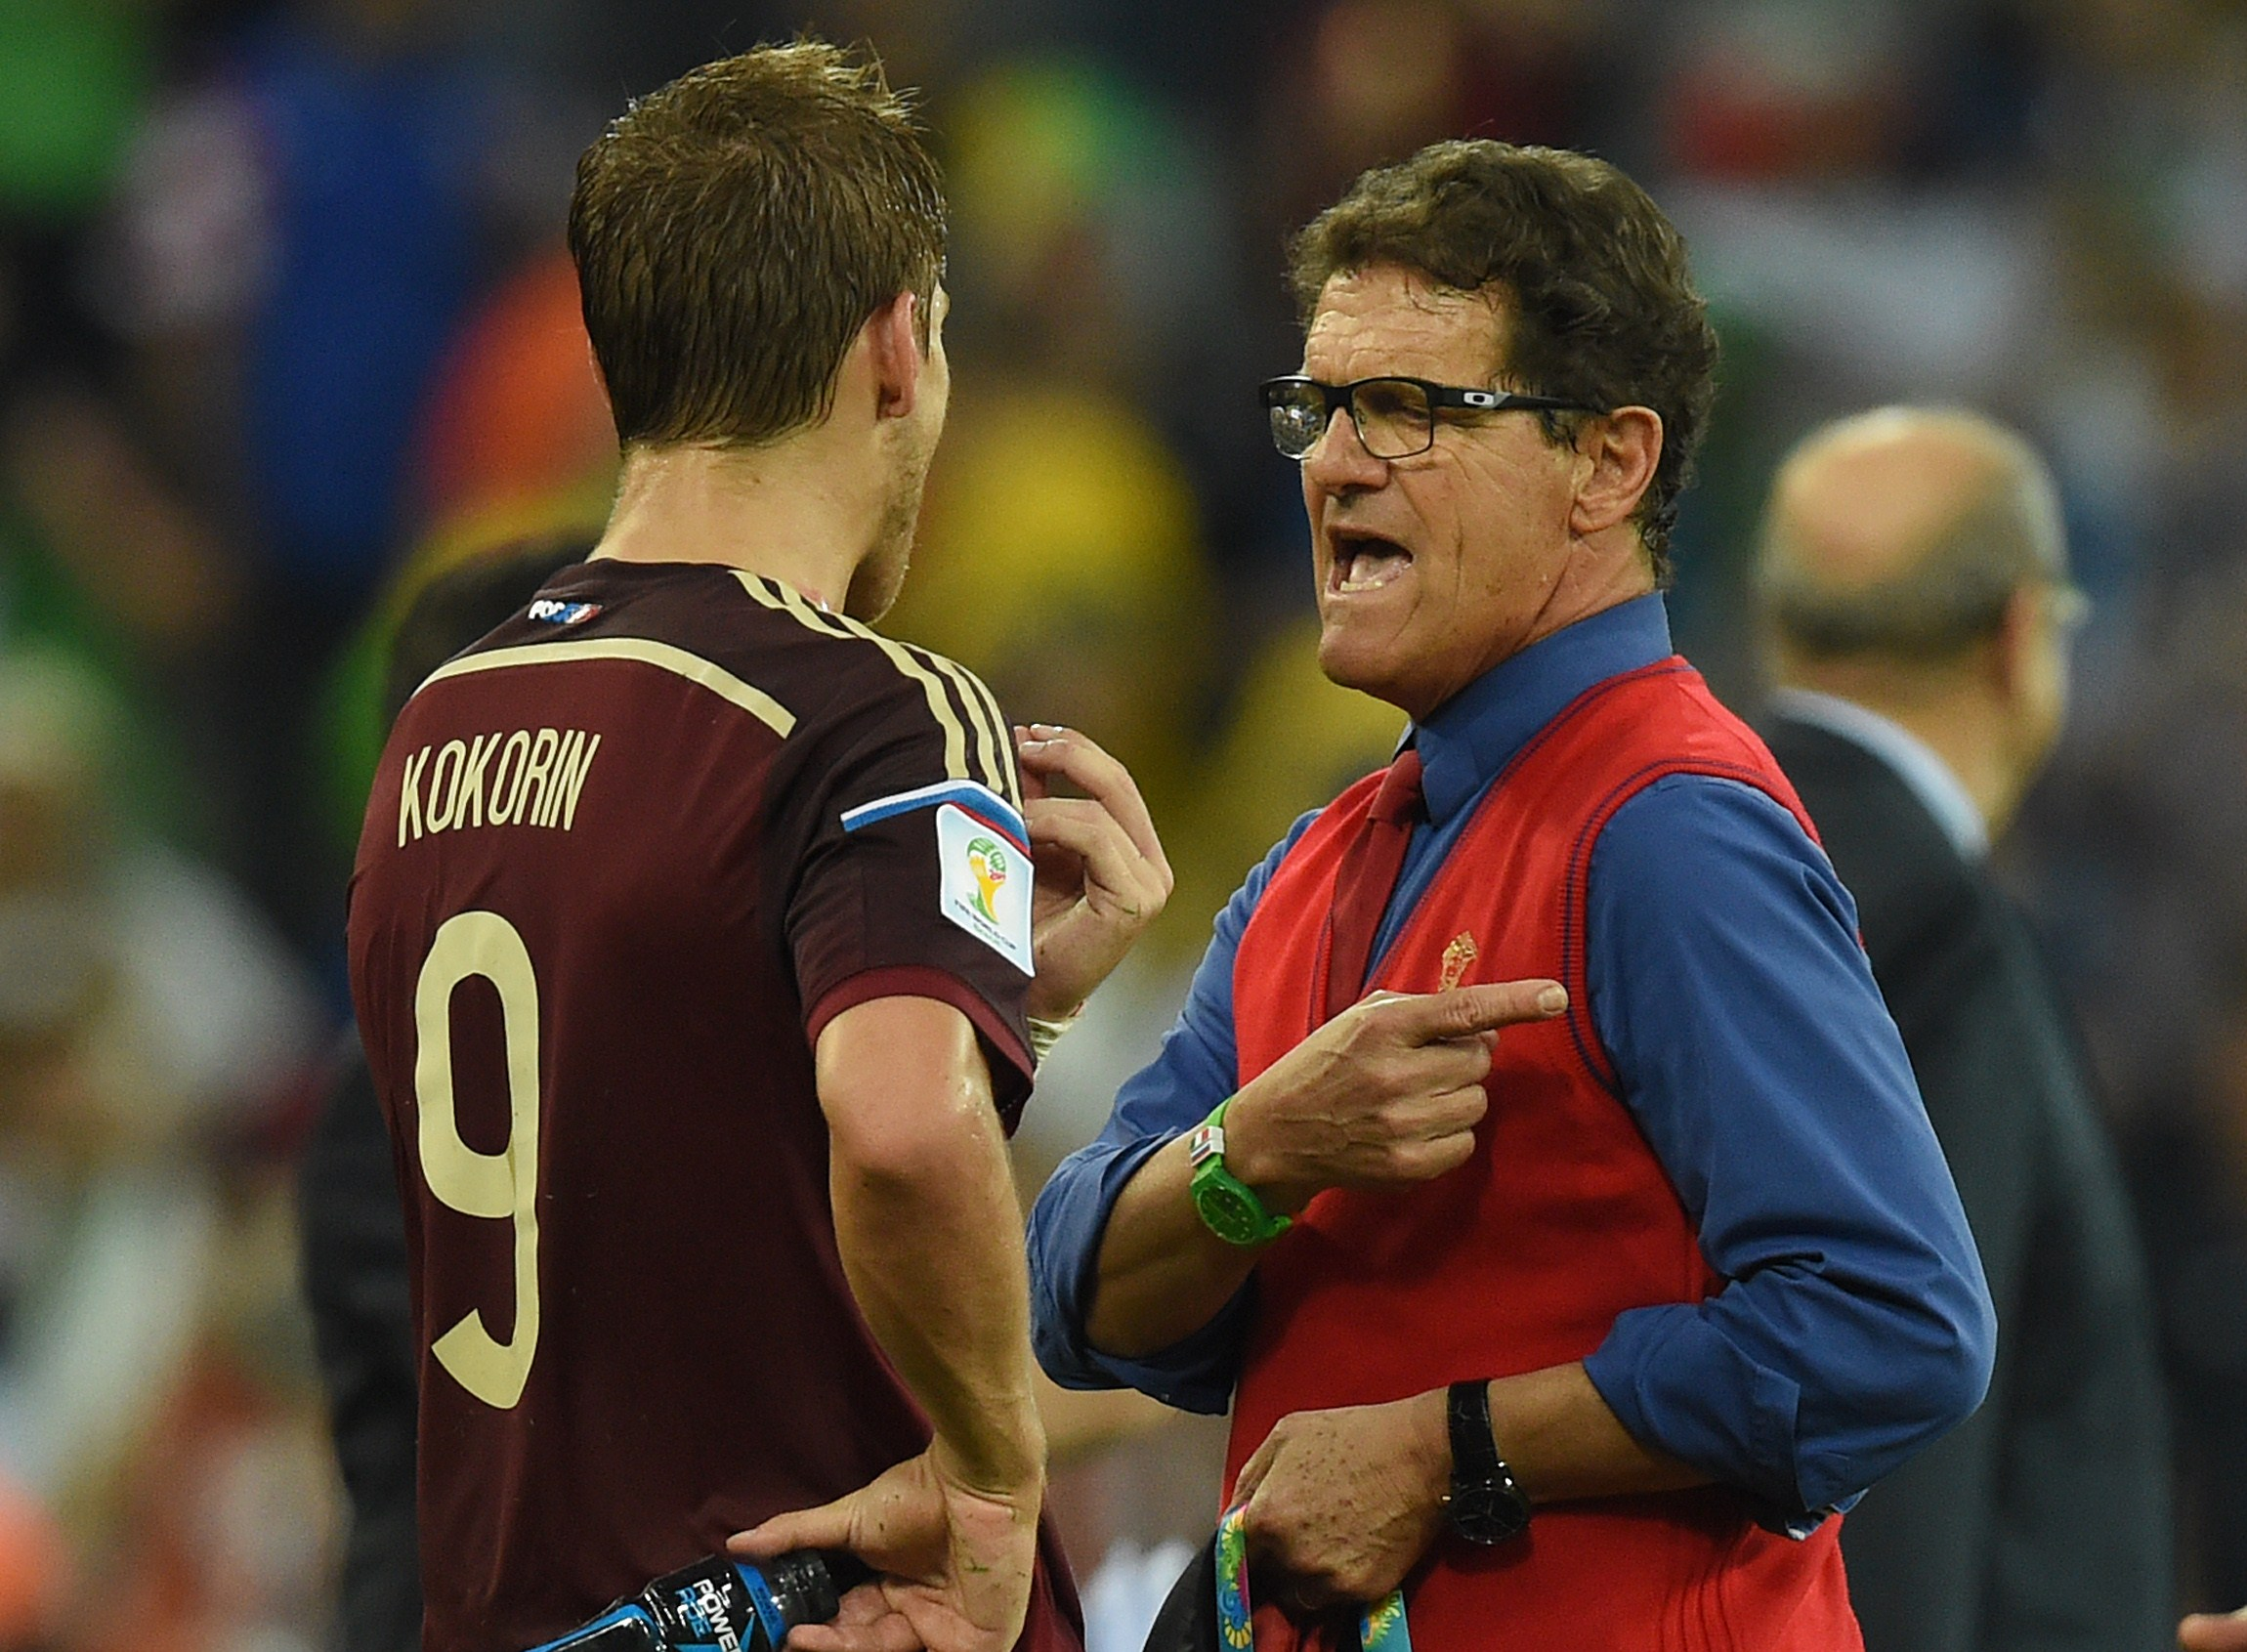 Fabio Capello branded 'a thief' who 'who dresses like a school teacher' by angry Russian politician